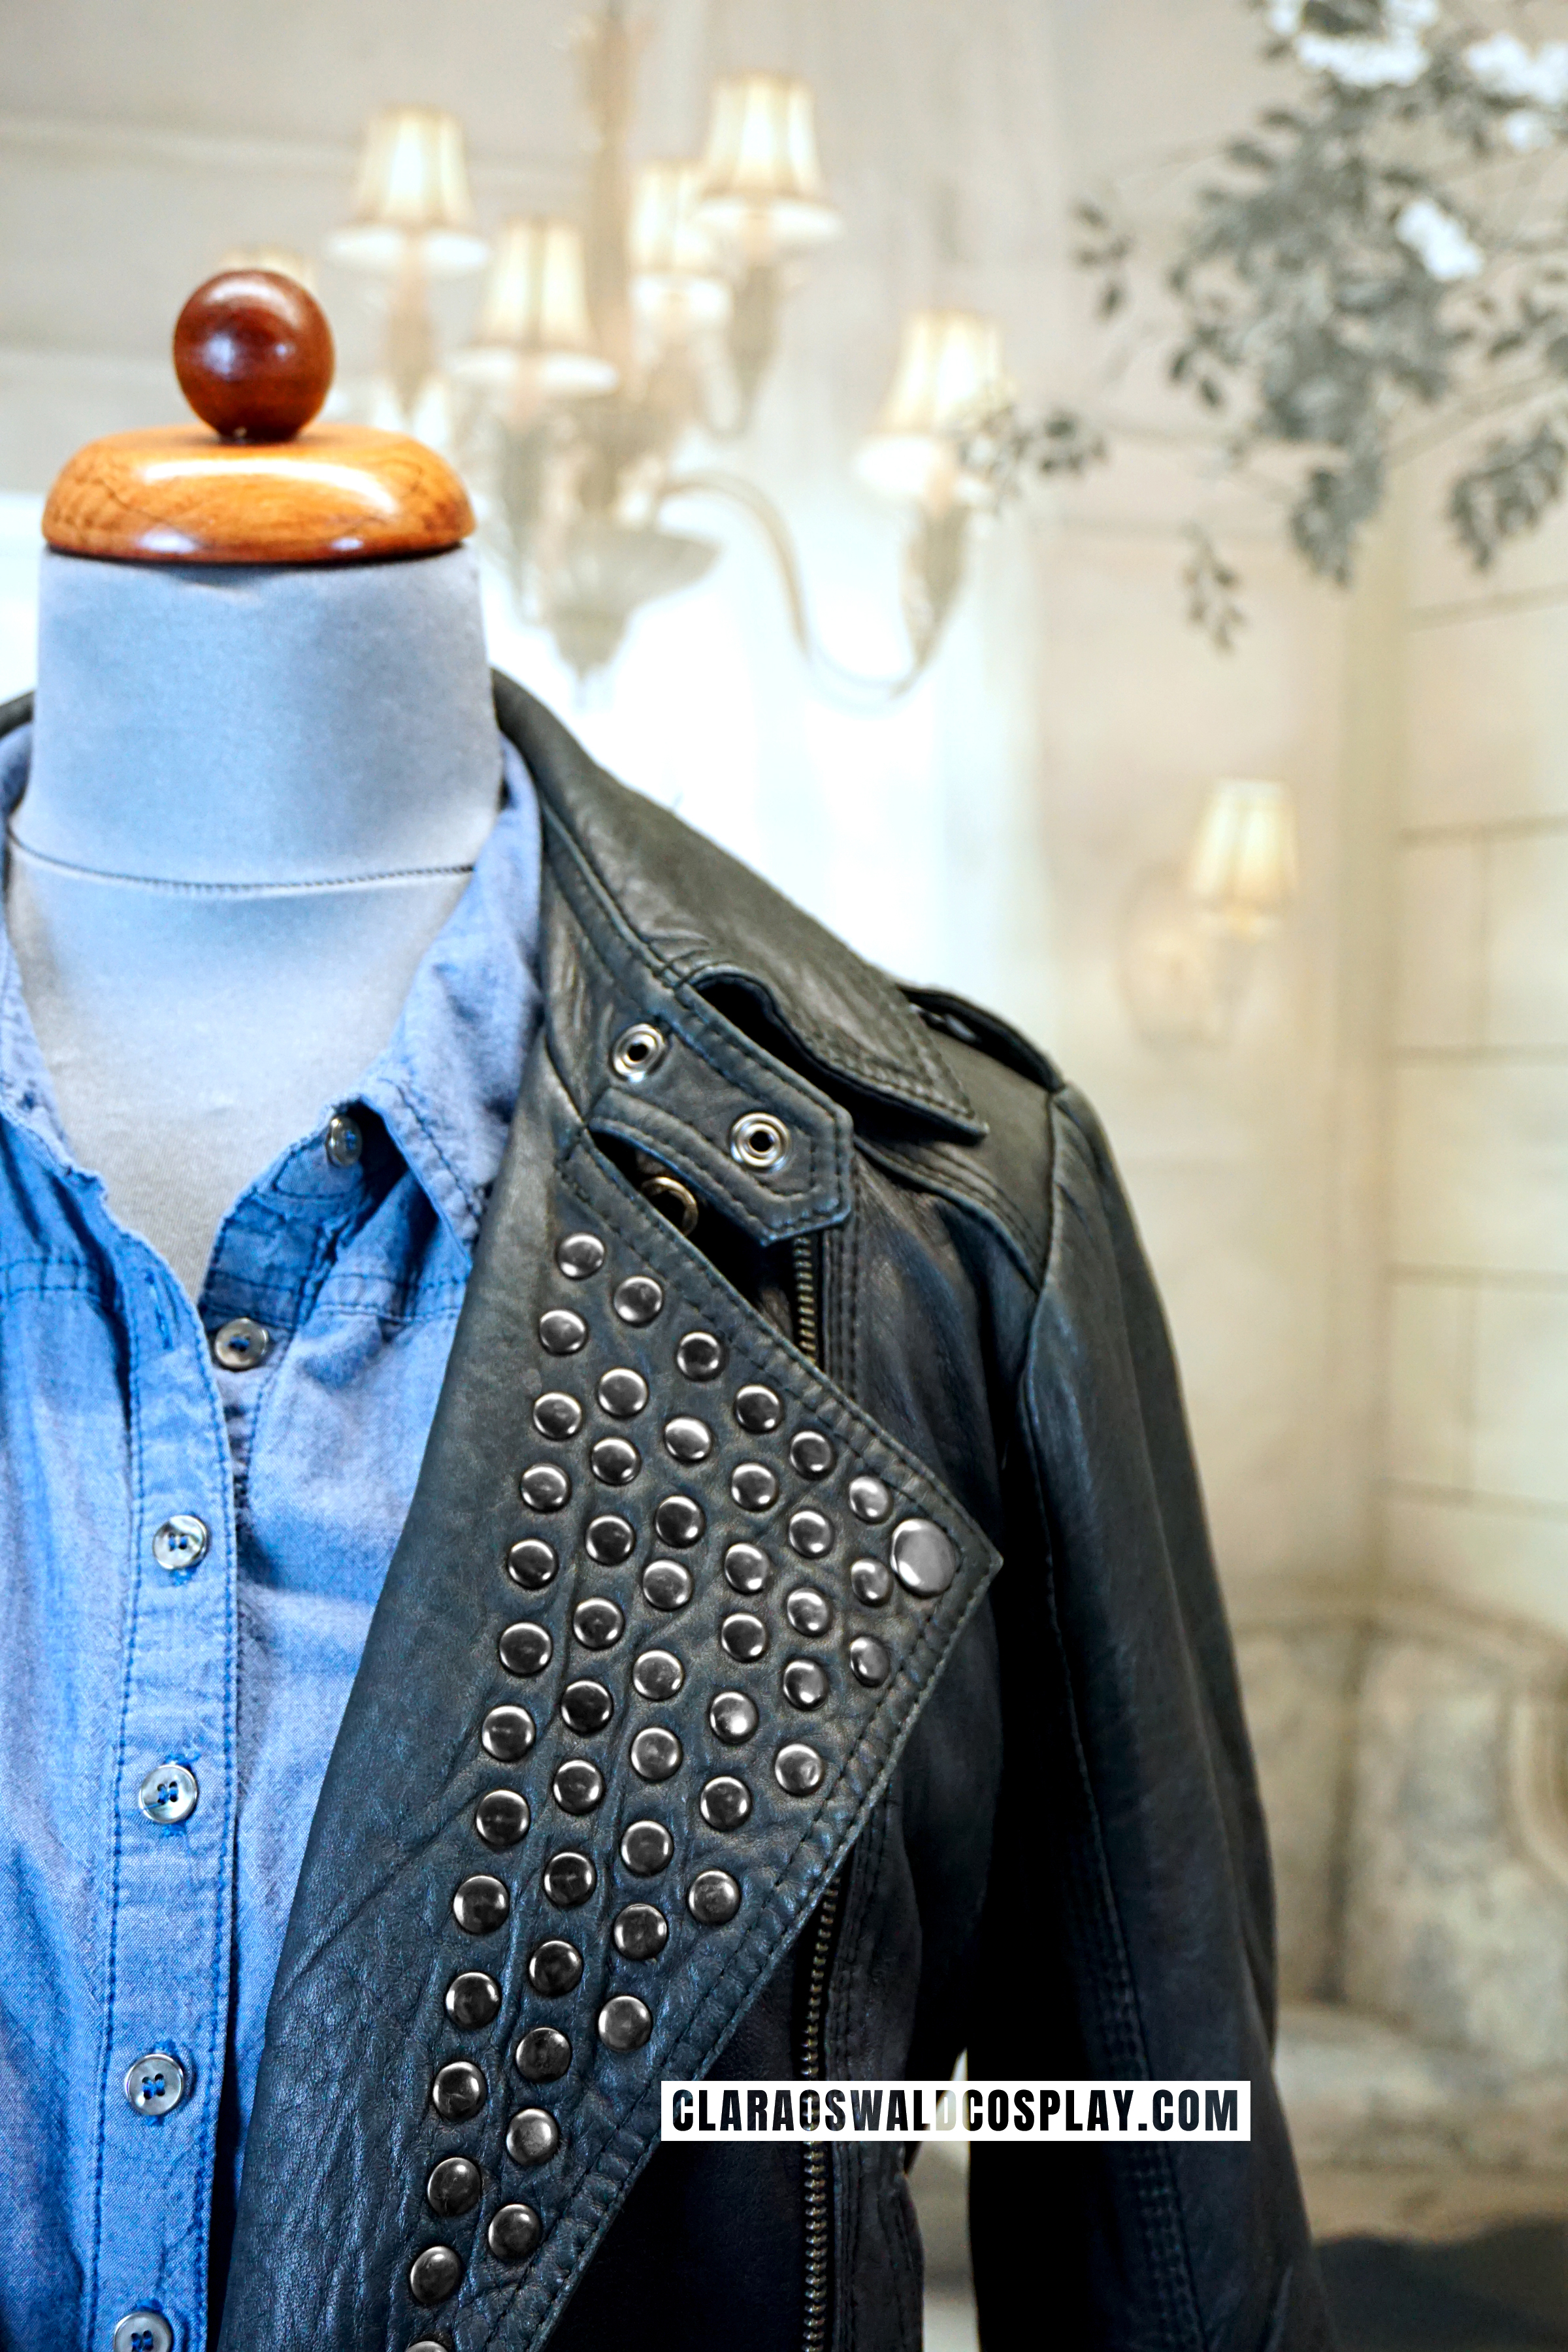 The studded collar of the Topshop Jacket